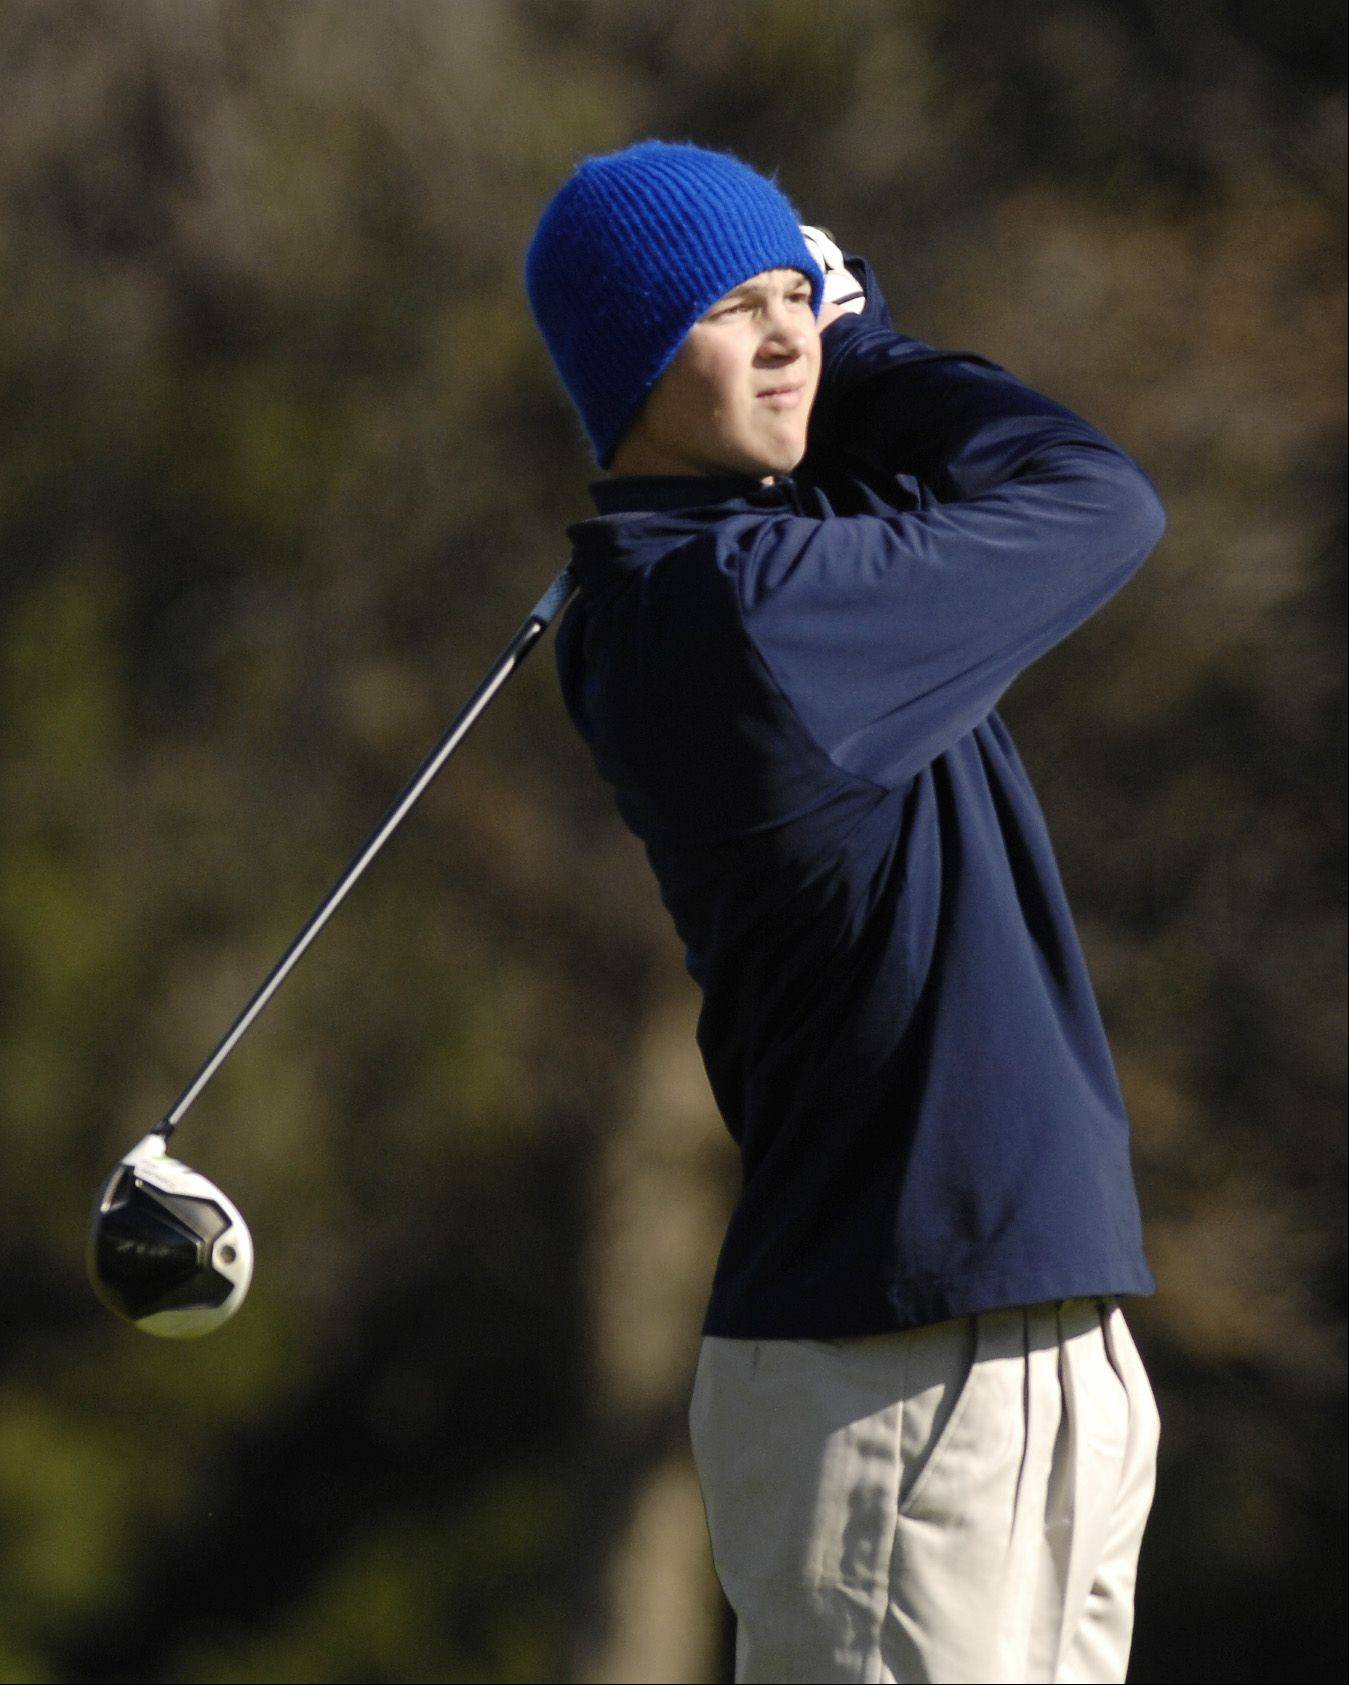 Dan Harnett of Addison Trail tees off during the St. Charles East boys varsity golf sectional at St. Andrews Golf Club in West Chicago, Monday.